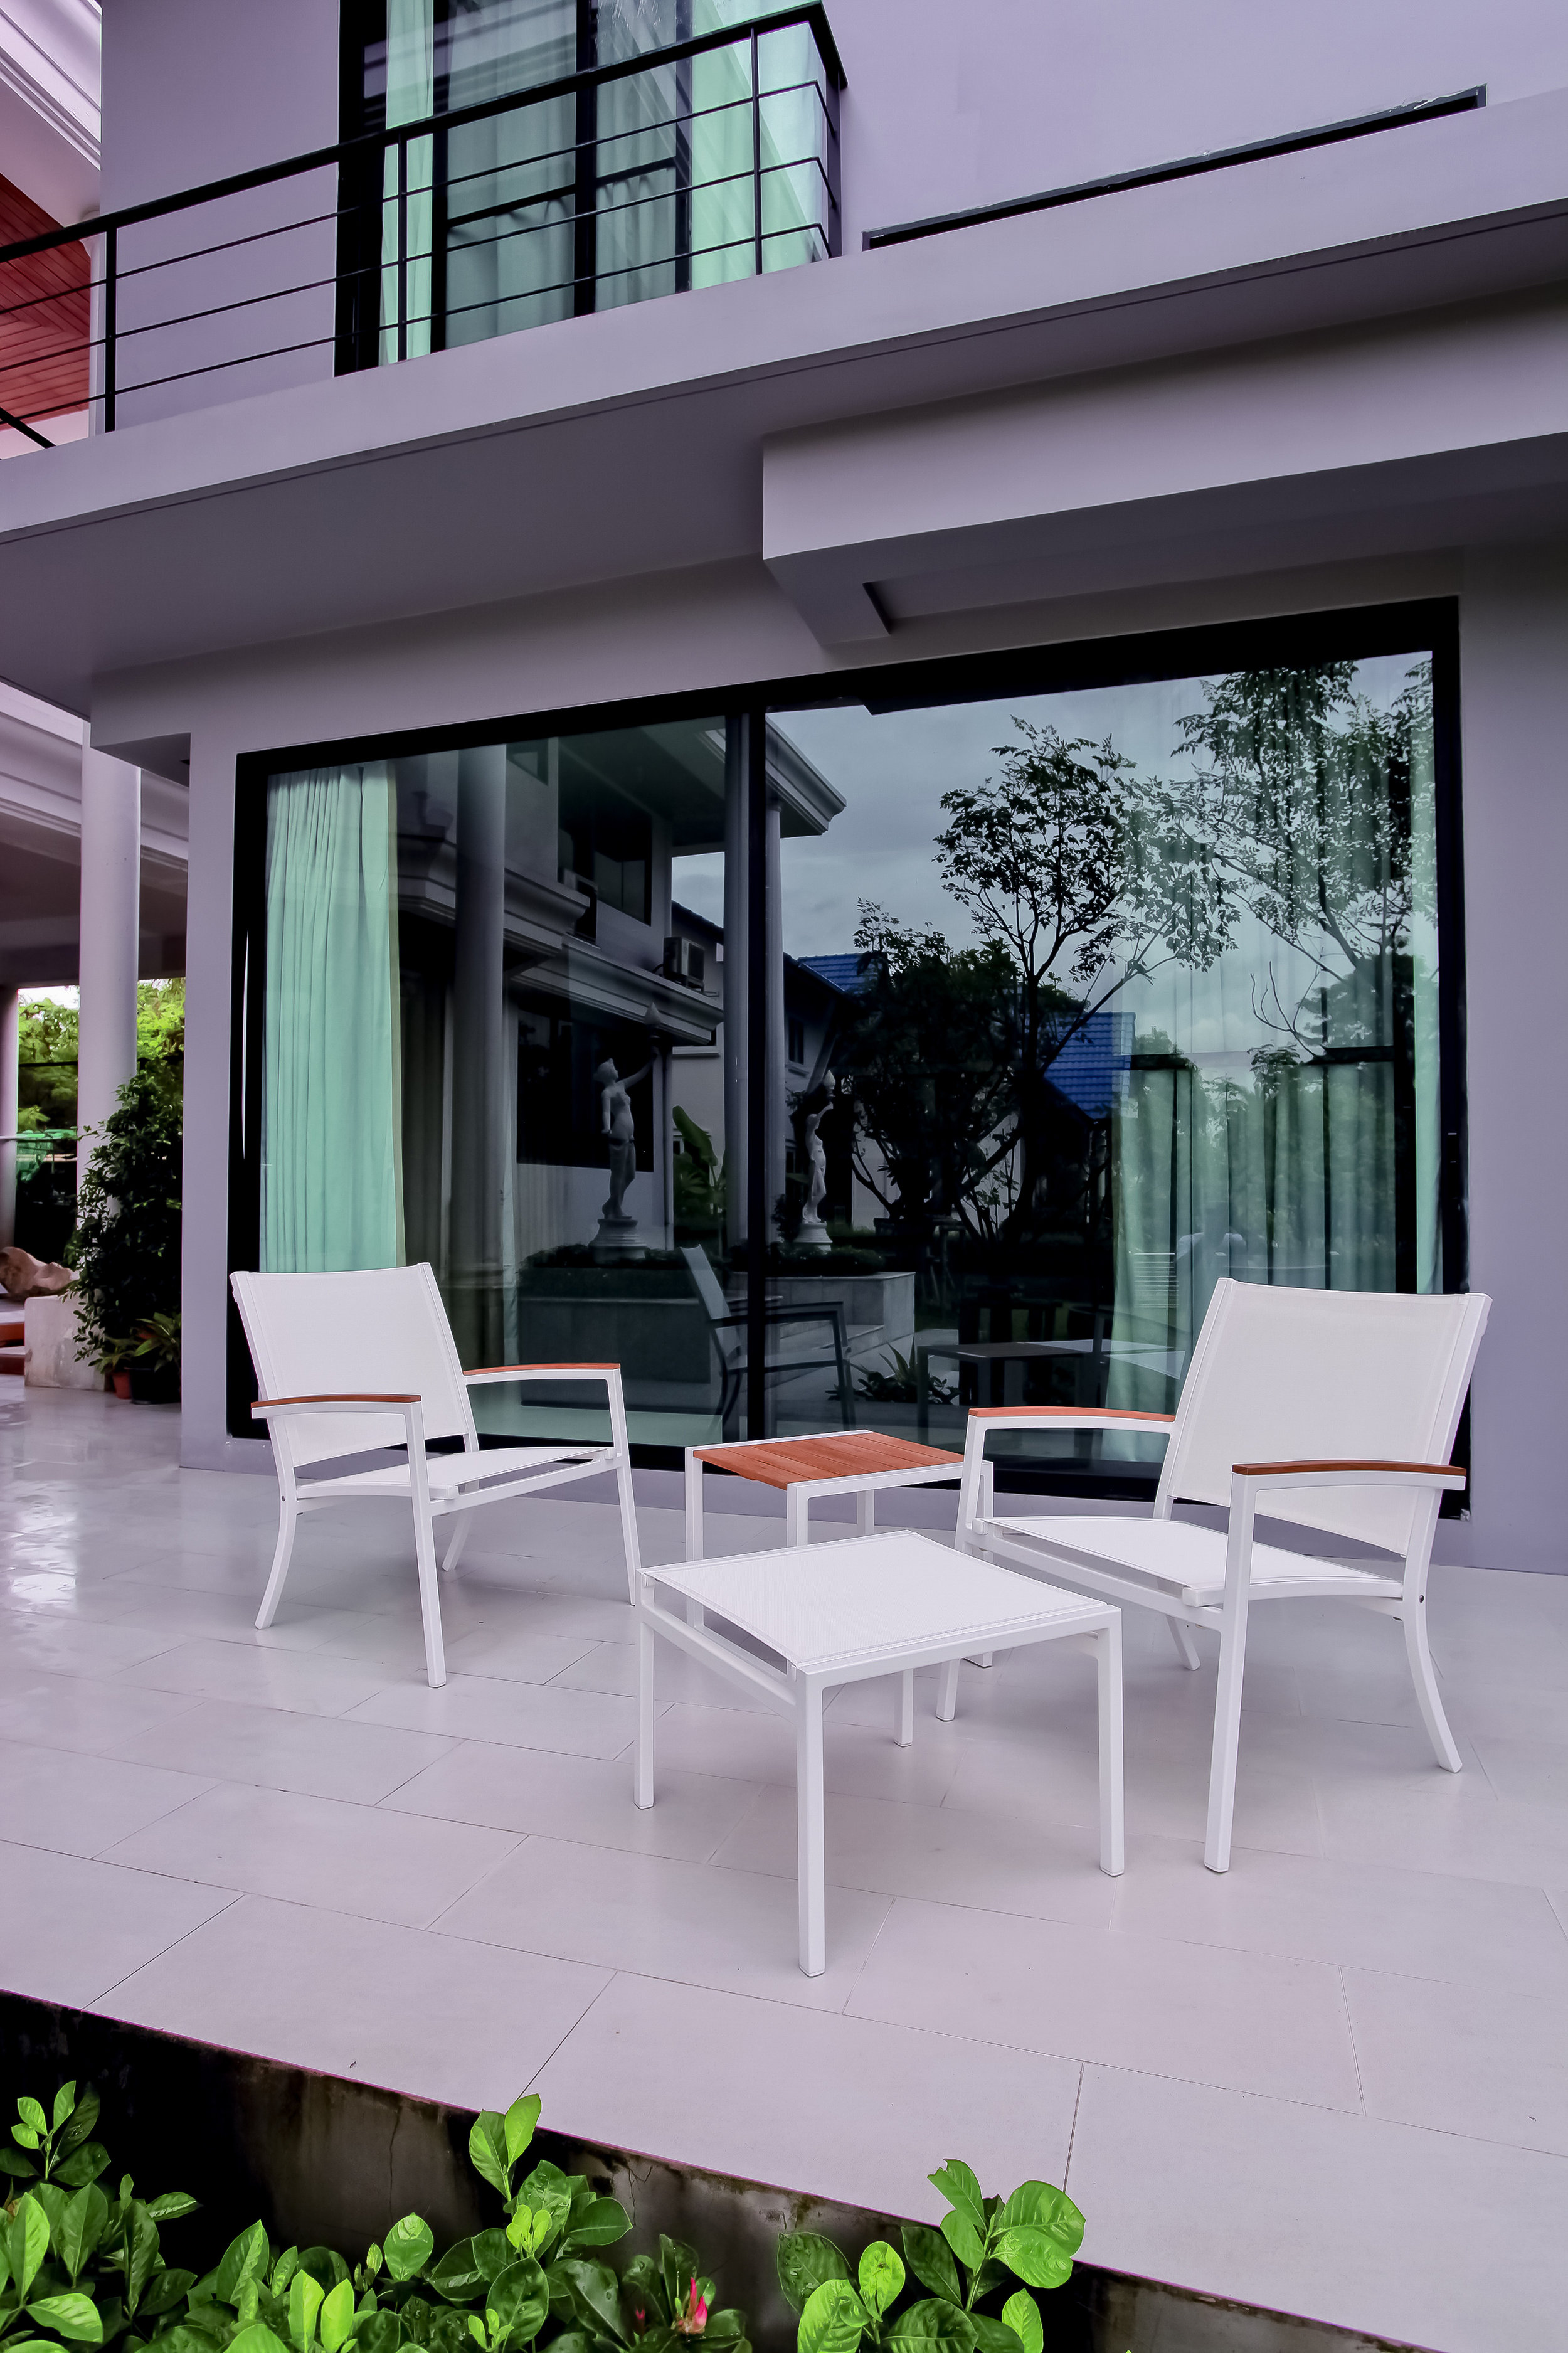 Core Wide ultimate Powder Coated chair with ottomanand matching teak side table copy.jpg